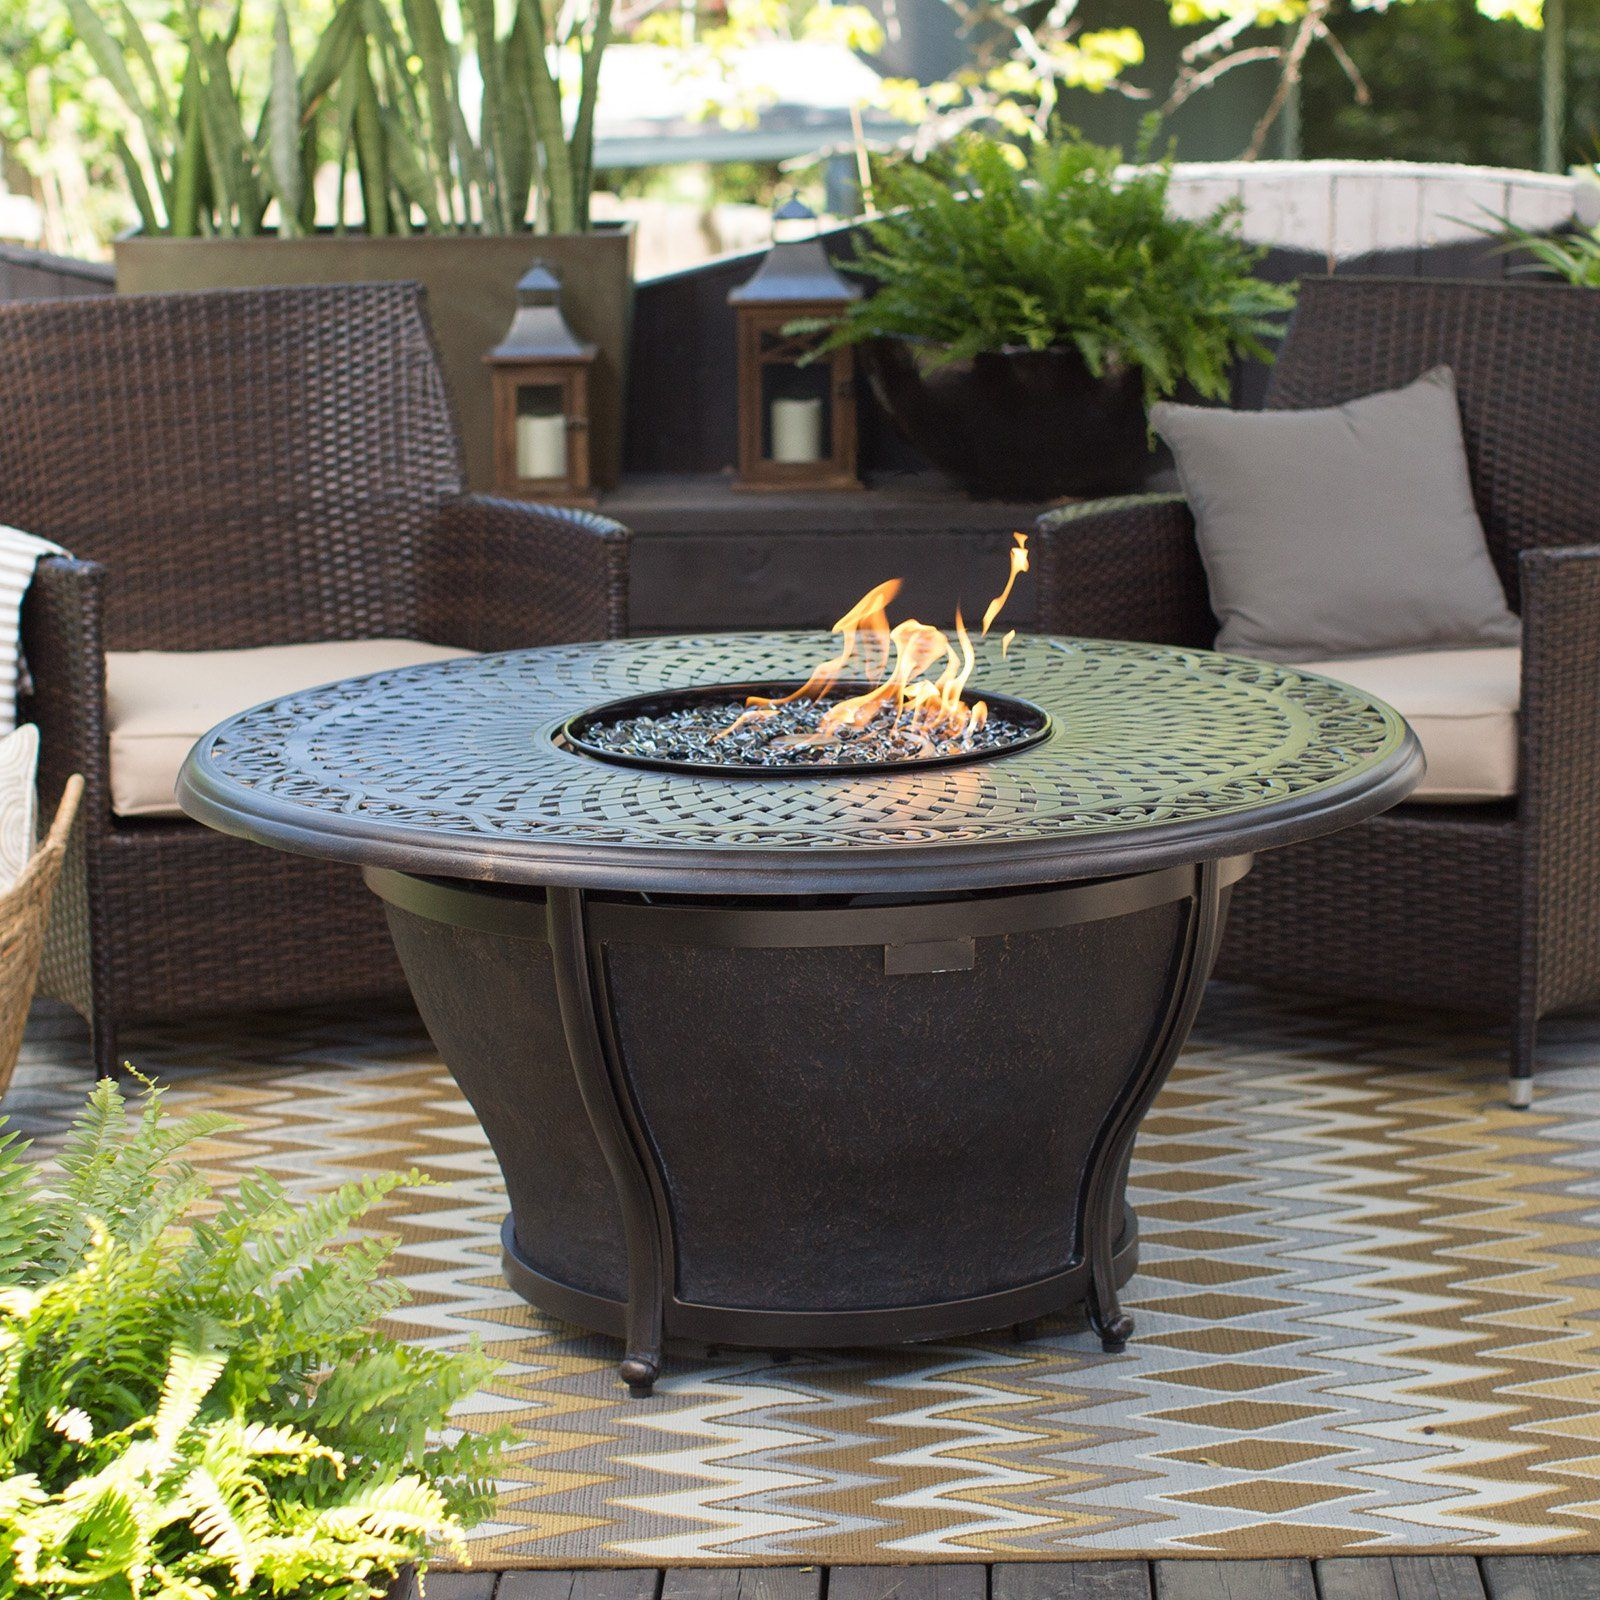 Red ember by agio charleston 48 in round fire pit table with free cover from hayneedle com